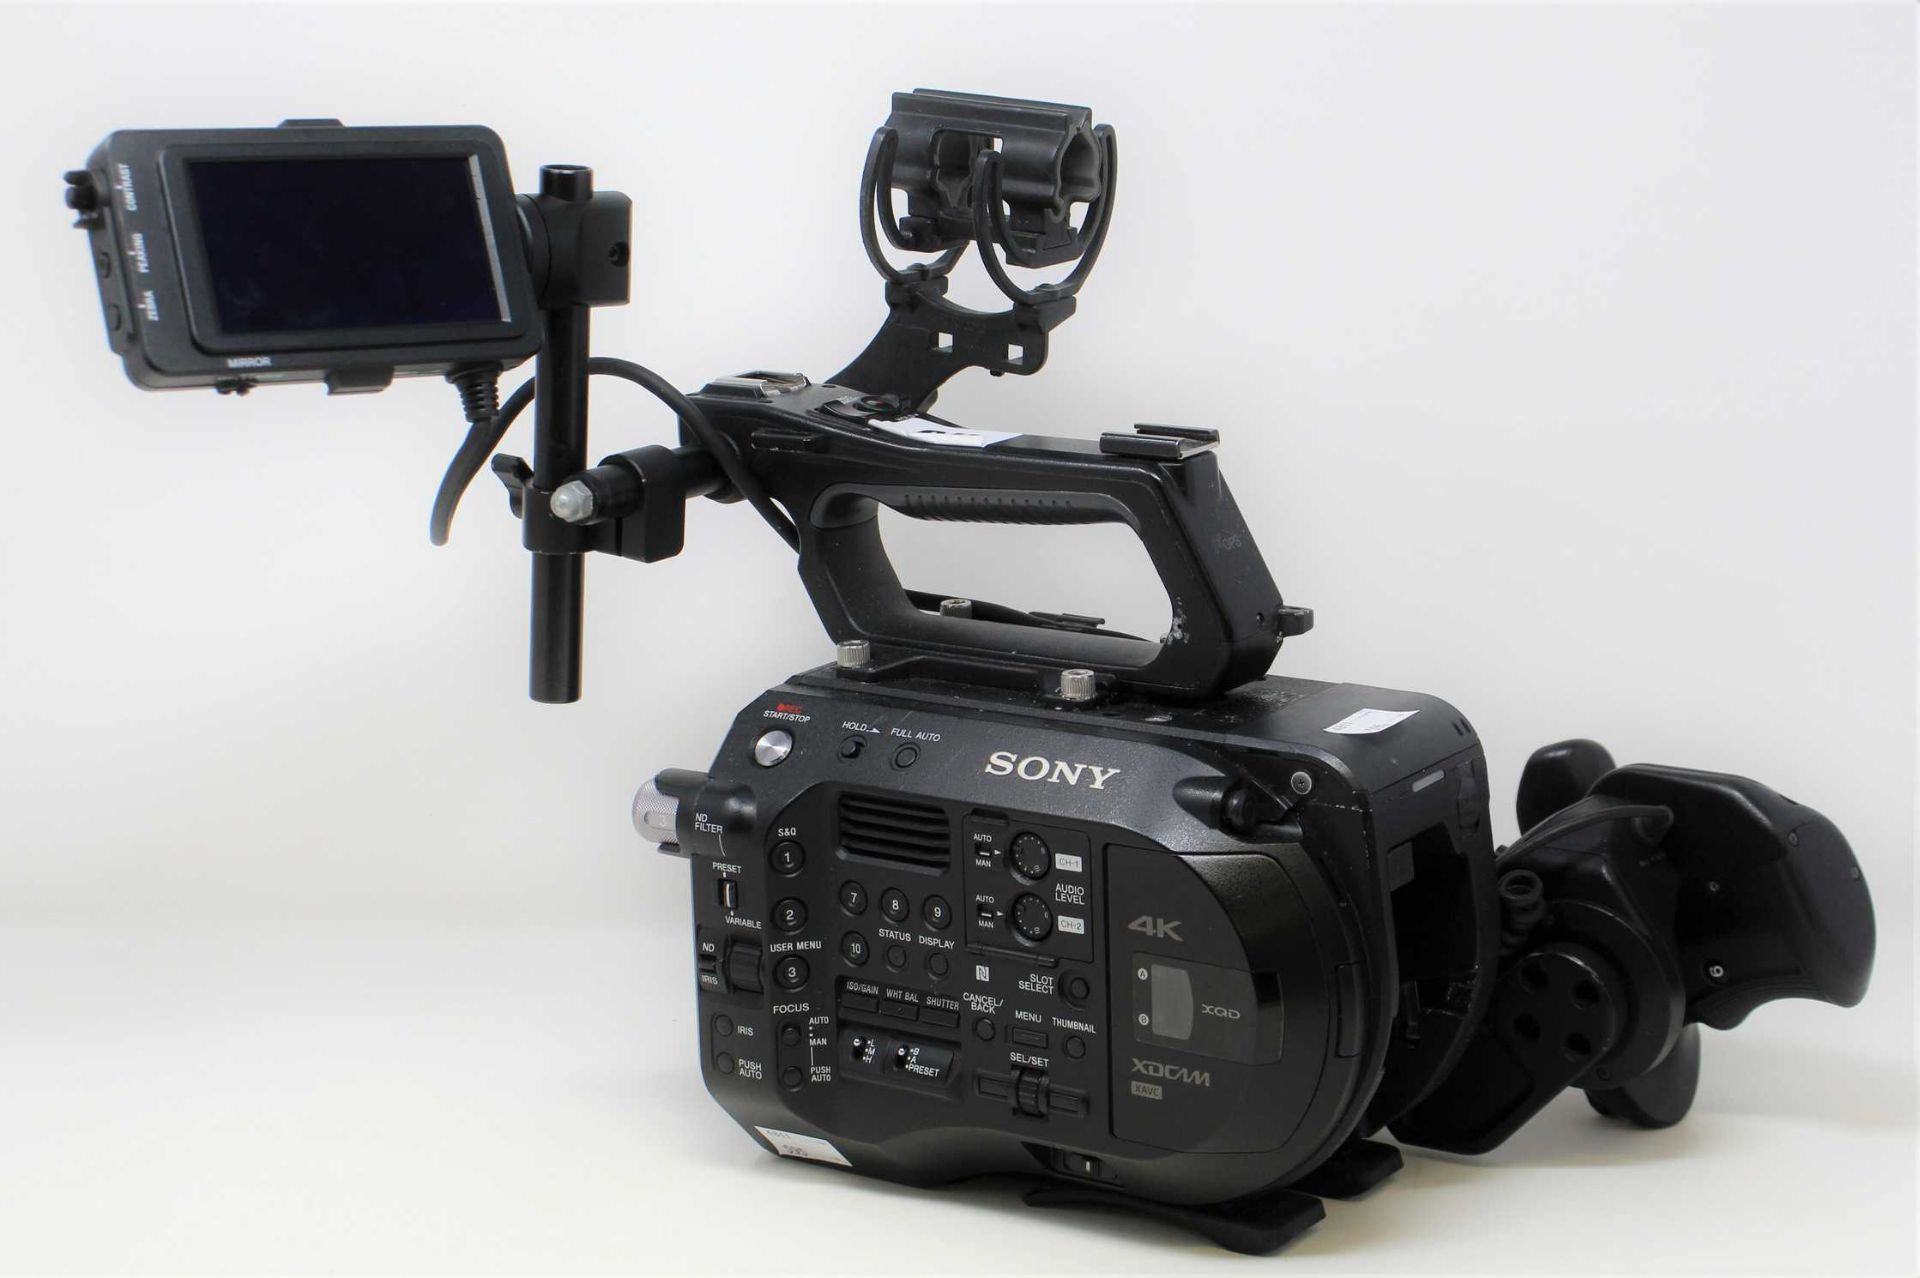 A pre-owned Sony PXW-FS7 II XDCAM 4K Super 35 E-mount Camera Body with Grip and LCD Monitor (M/N: